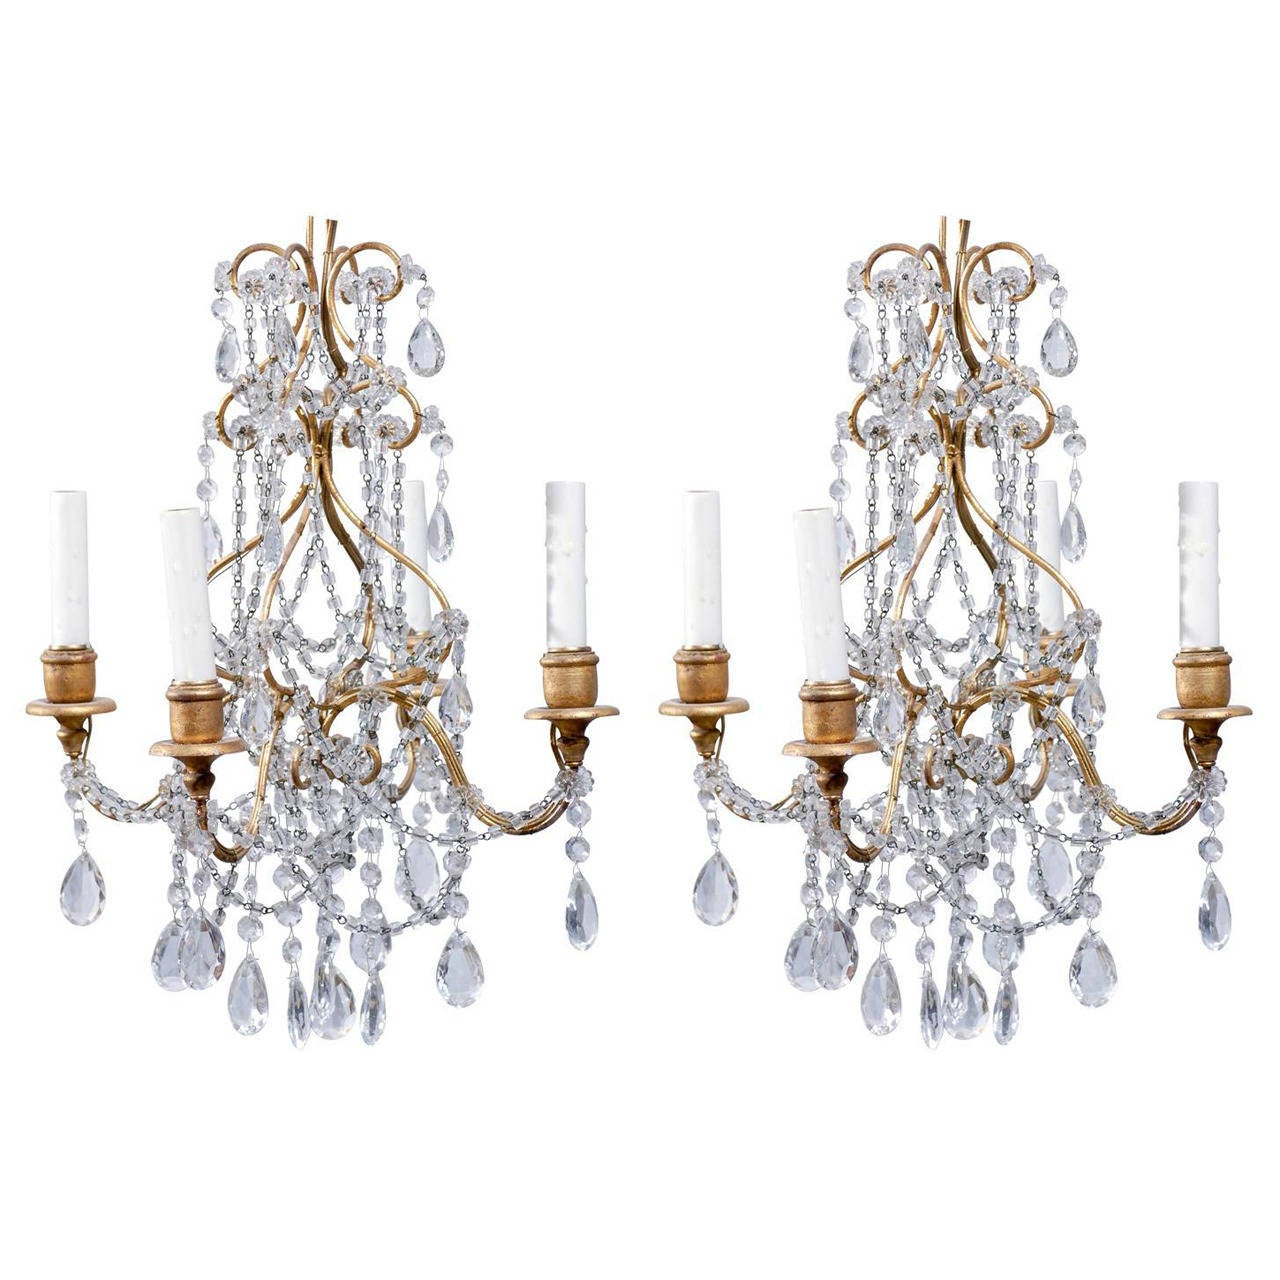 Crystal Chandelier Small Size: Pair Of Small Size Italian Crystal Four-Light Chandeliers